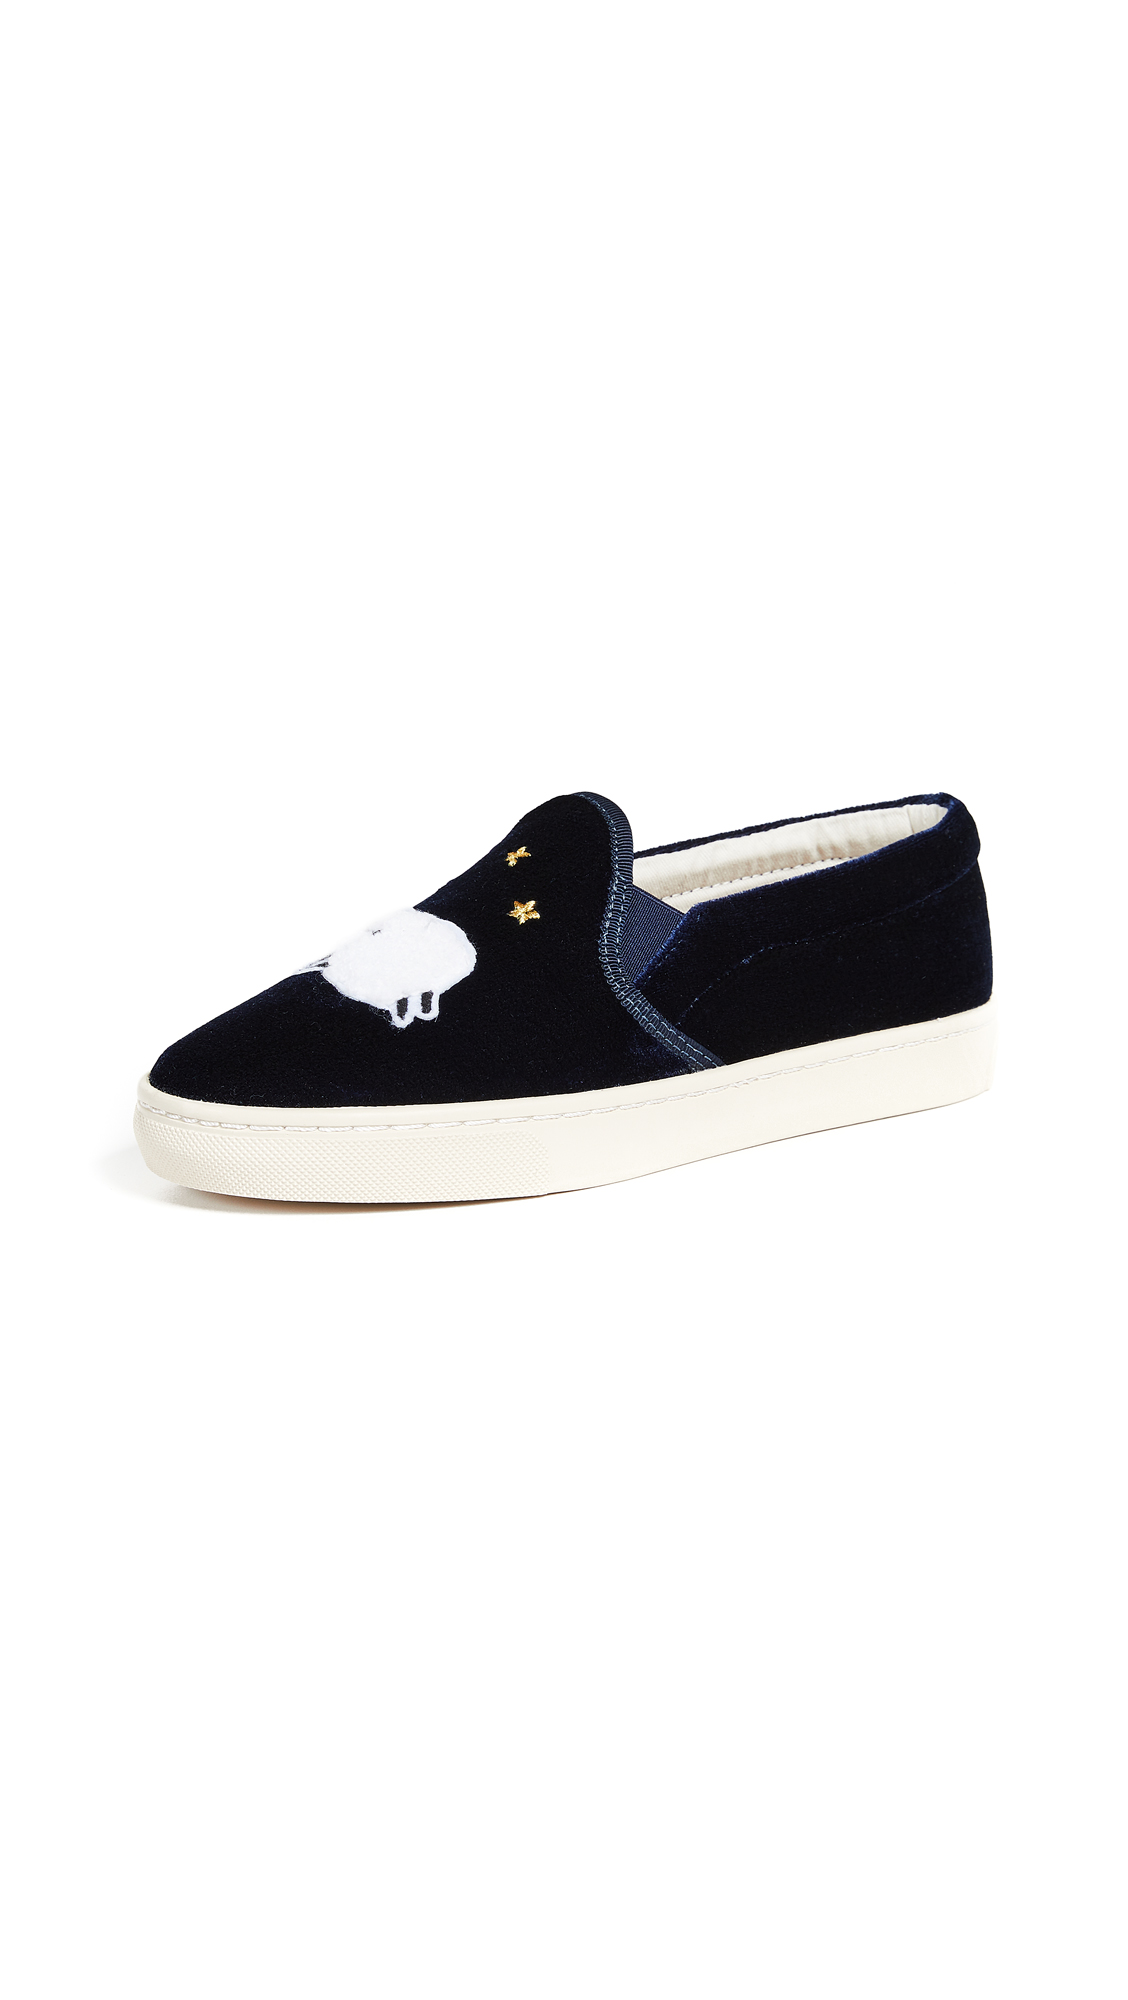 Soludos Velvet Sheep Slip On Slippers - Midnight Blue